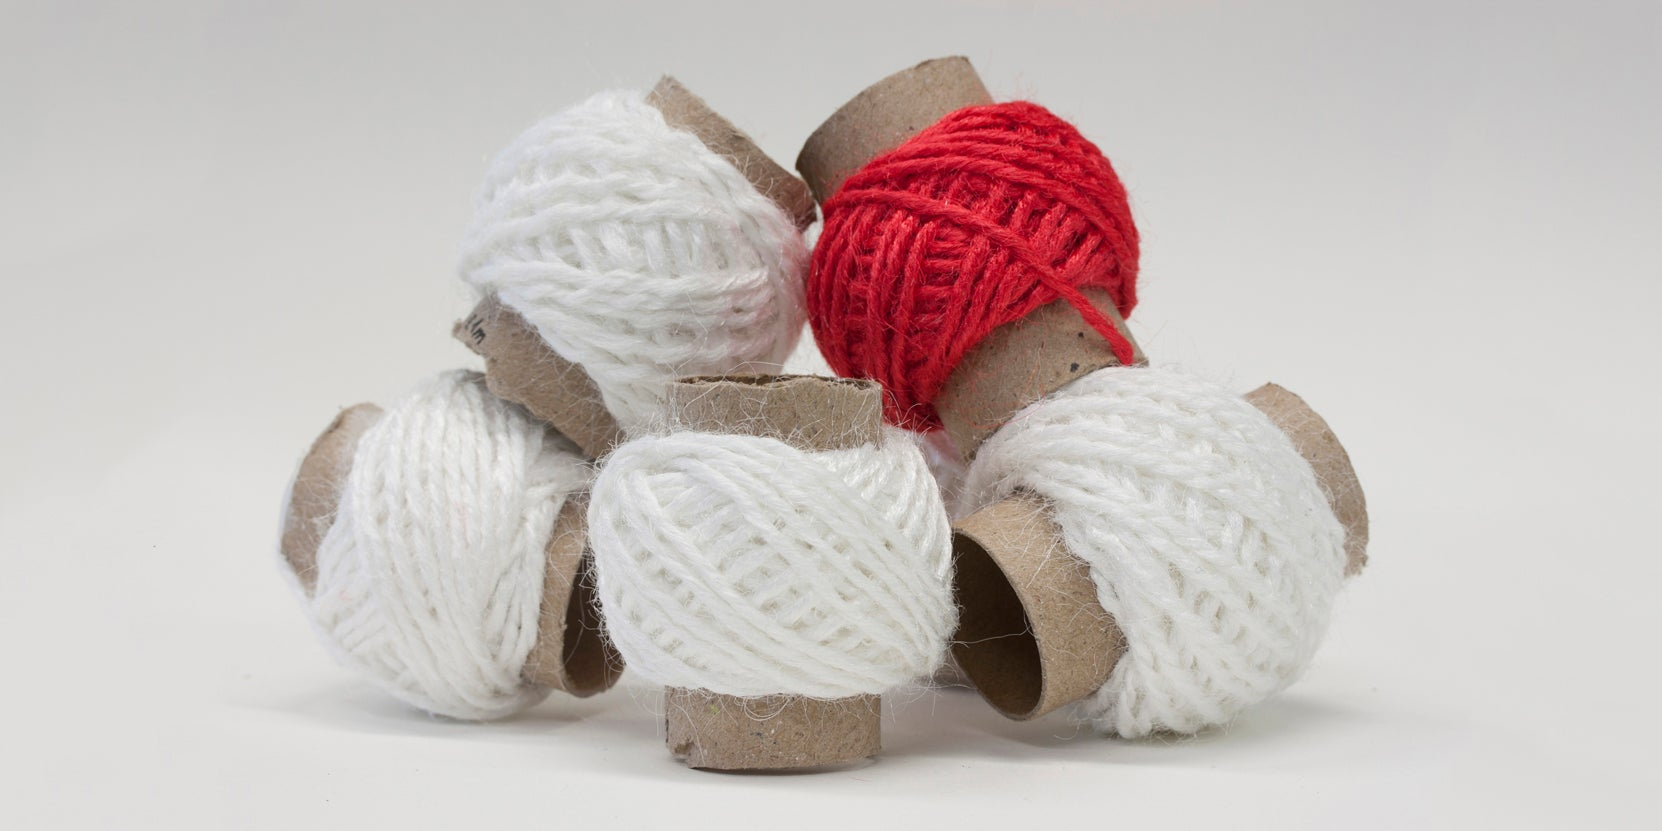 This Luxurious Yarn Is Made From Bones, Ligaments and Tendons